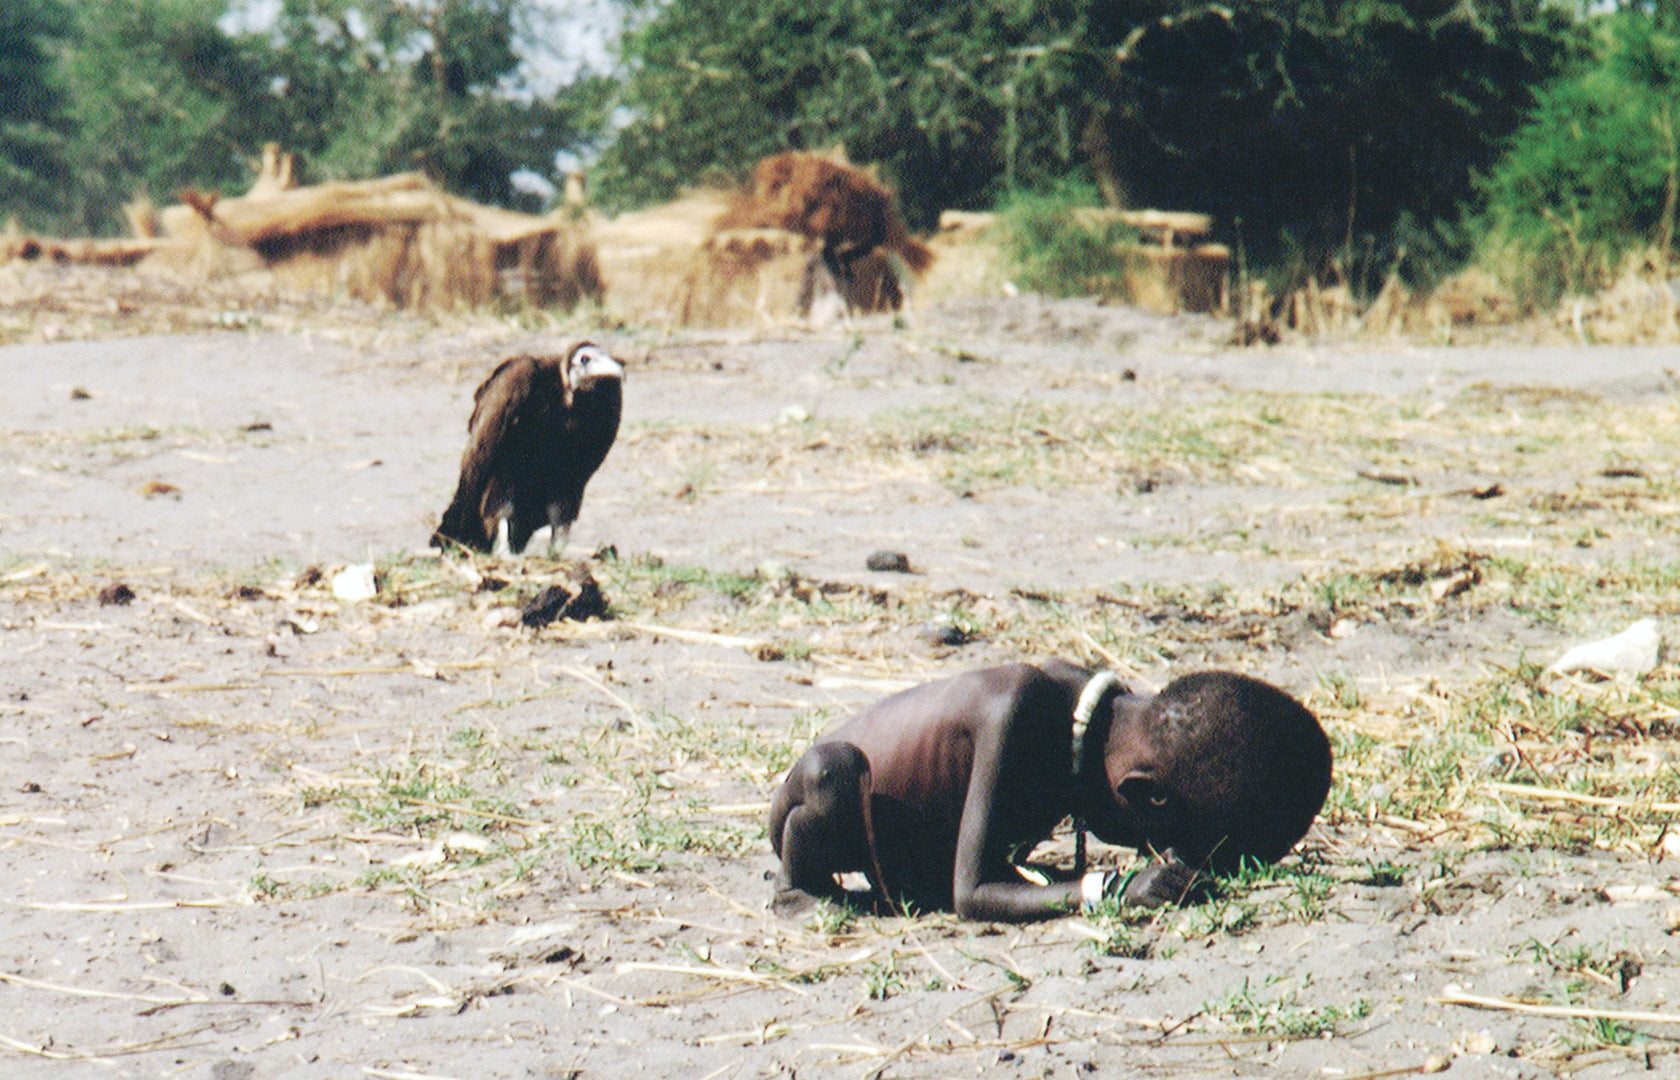 Photos reveal the unseen side of things… At first, it seems unethical. Who would actually shoot such a picture? A vulture stalking over a small starving child… The photo was taken in 1993 by a South African photojournalist Kevin Carter. At the time he had travelled to Sudan to picture and report the famine. The photographer was highly criticised for his lack of ethical attitude. Why photograph an endangered starving child, threatened by a vulture? And show it to the world? The photographer was standing next to the mother and took the picture at a specific angle. In reality, the vulture wasn't actually so close. And the child had her mother beside. Kevin Cartner raised such a public outrage that he later took his own life in 1994. This image is a Pulitzer Prize-winning image. As famous for its social impact, as it is the ethical issues it raised.